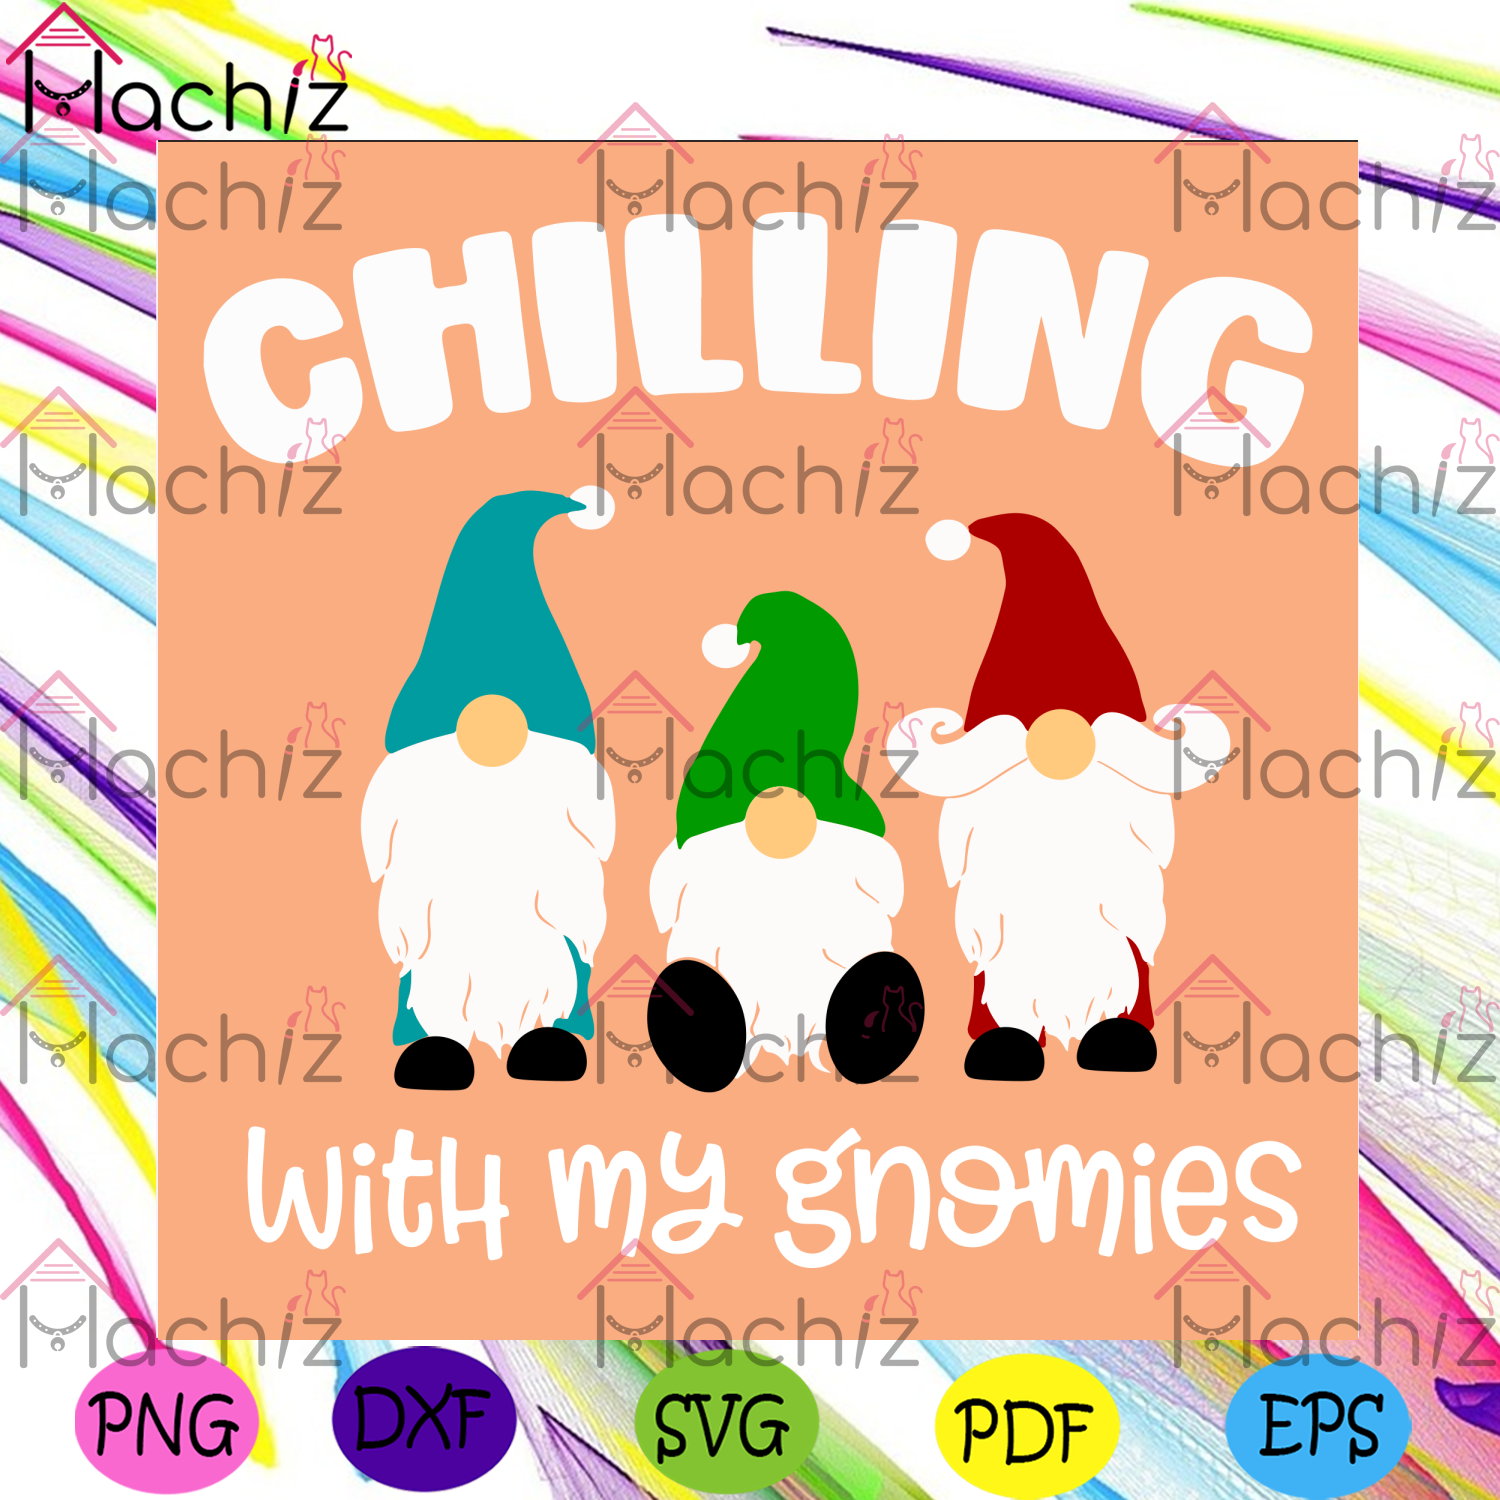 Chillin with my gnomies svg christmas svg, chill svg, chilling svg